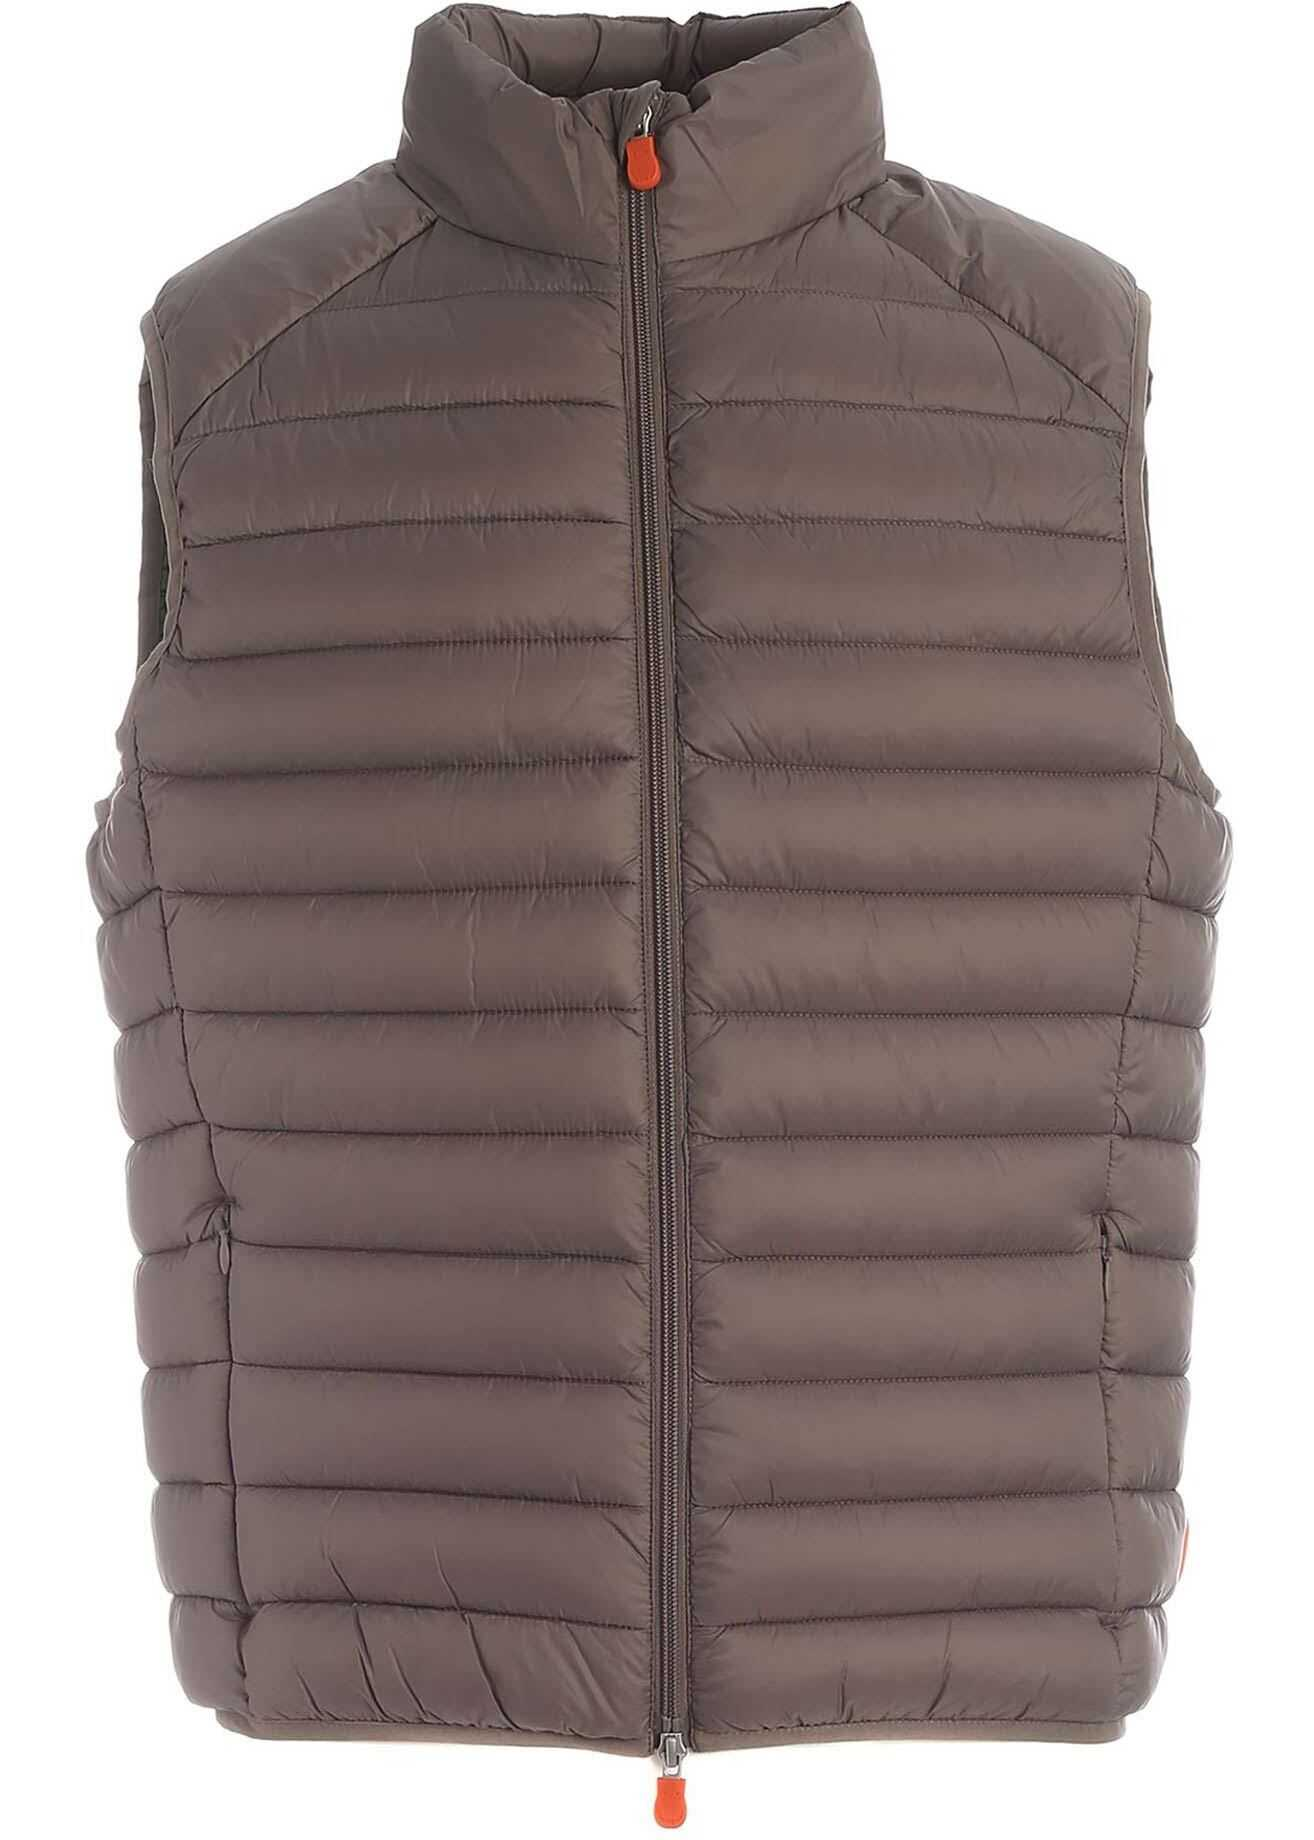 Save the Duck Plumtech® Padded Waistcoat In Dove Grey Color Beige imagine